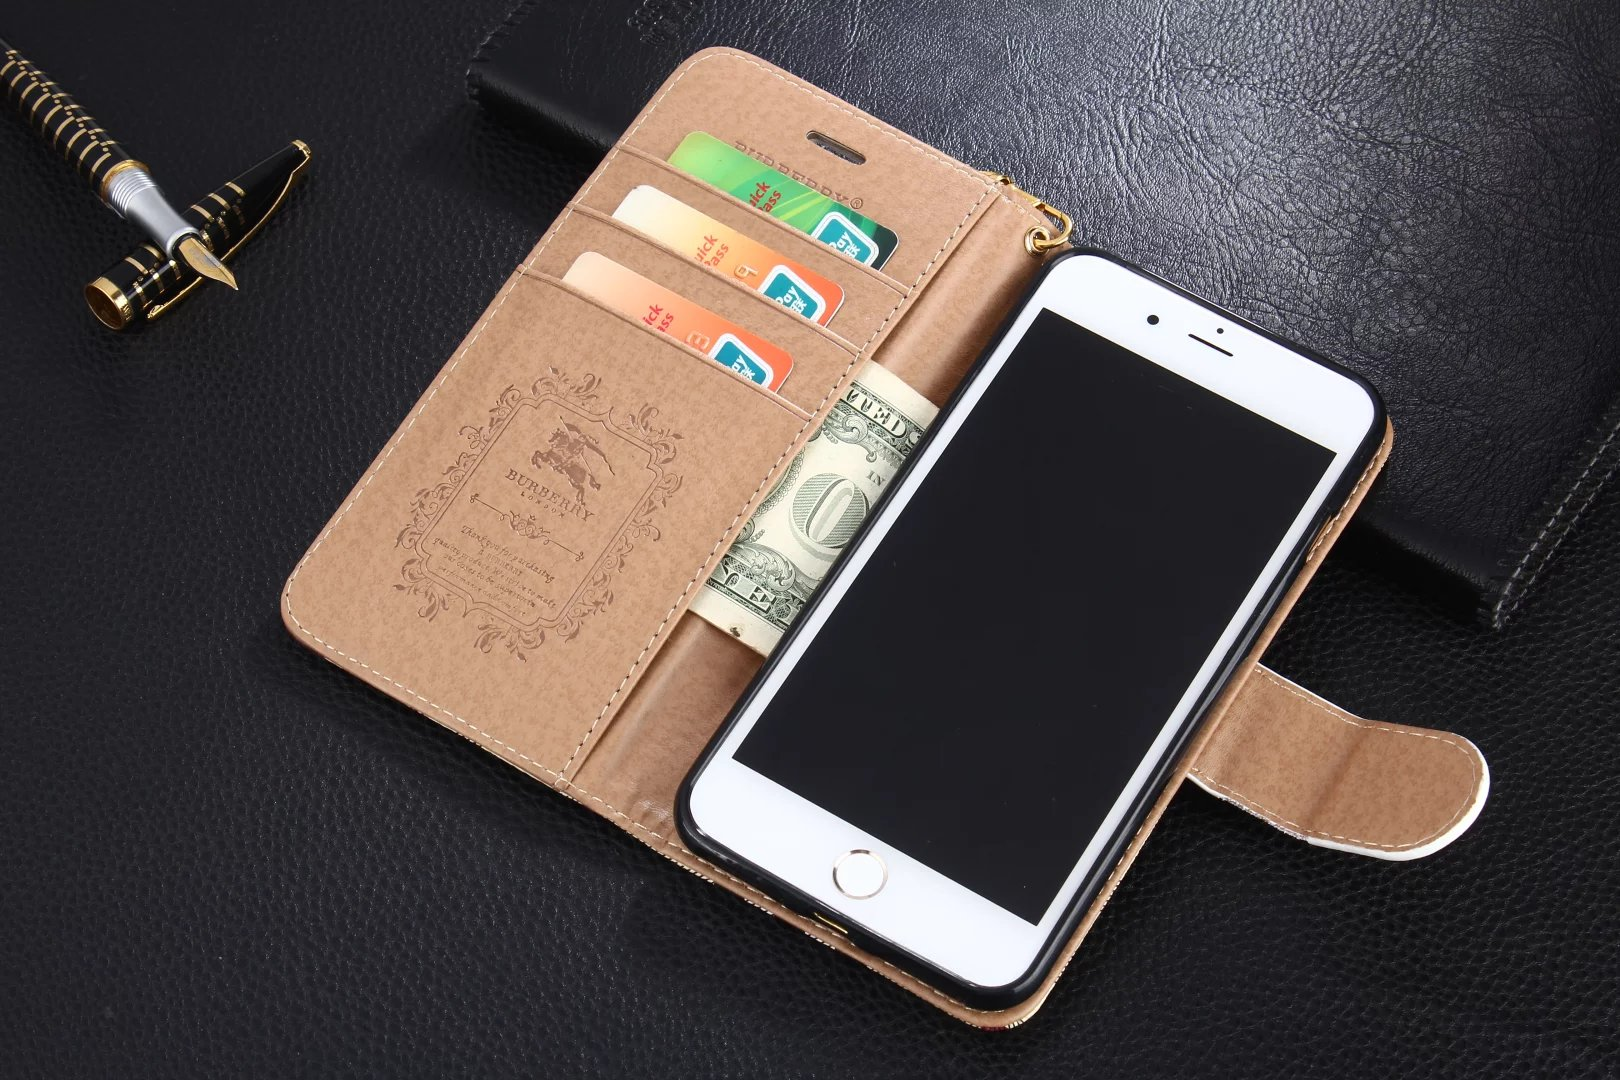 samsung galaxy s6 edge plus custom case galaxy s6 edge plus cool cases fashion Galaxy S6 edge Plus case galaxy s6 edge plus leather holster case para samsung galaxy s6 edge plus info on samsung galaxy s6 edge plus ballistic case for galaxy s6 edge plus s6 edge pluscases leather s6 edge plus case